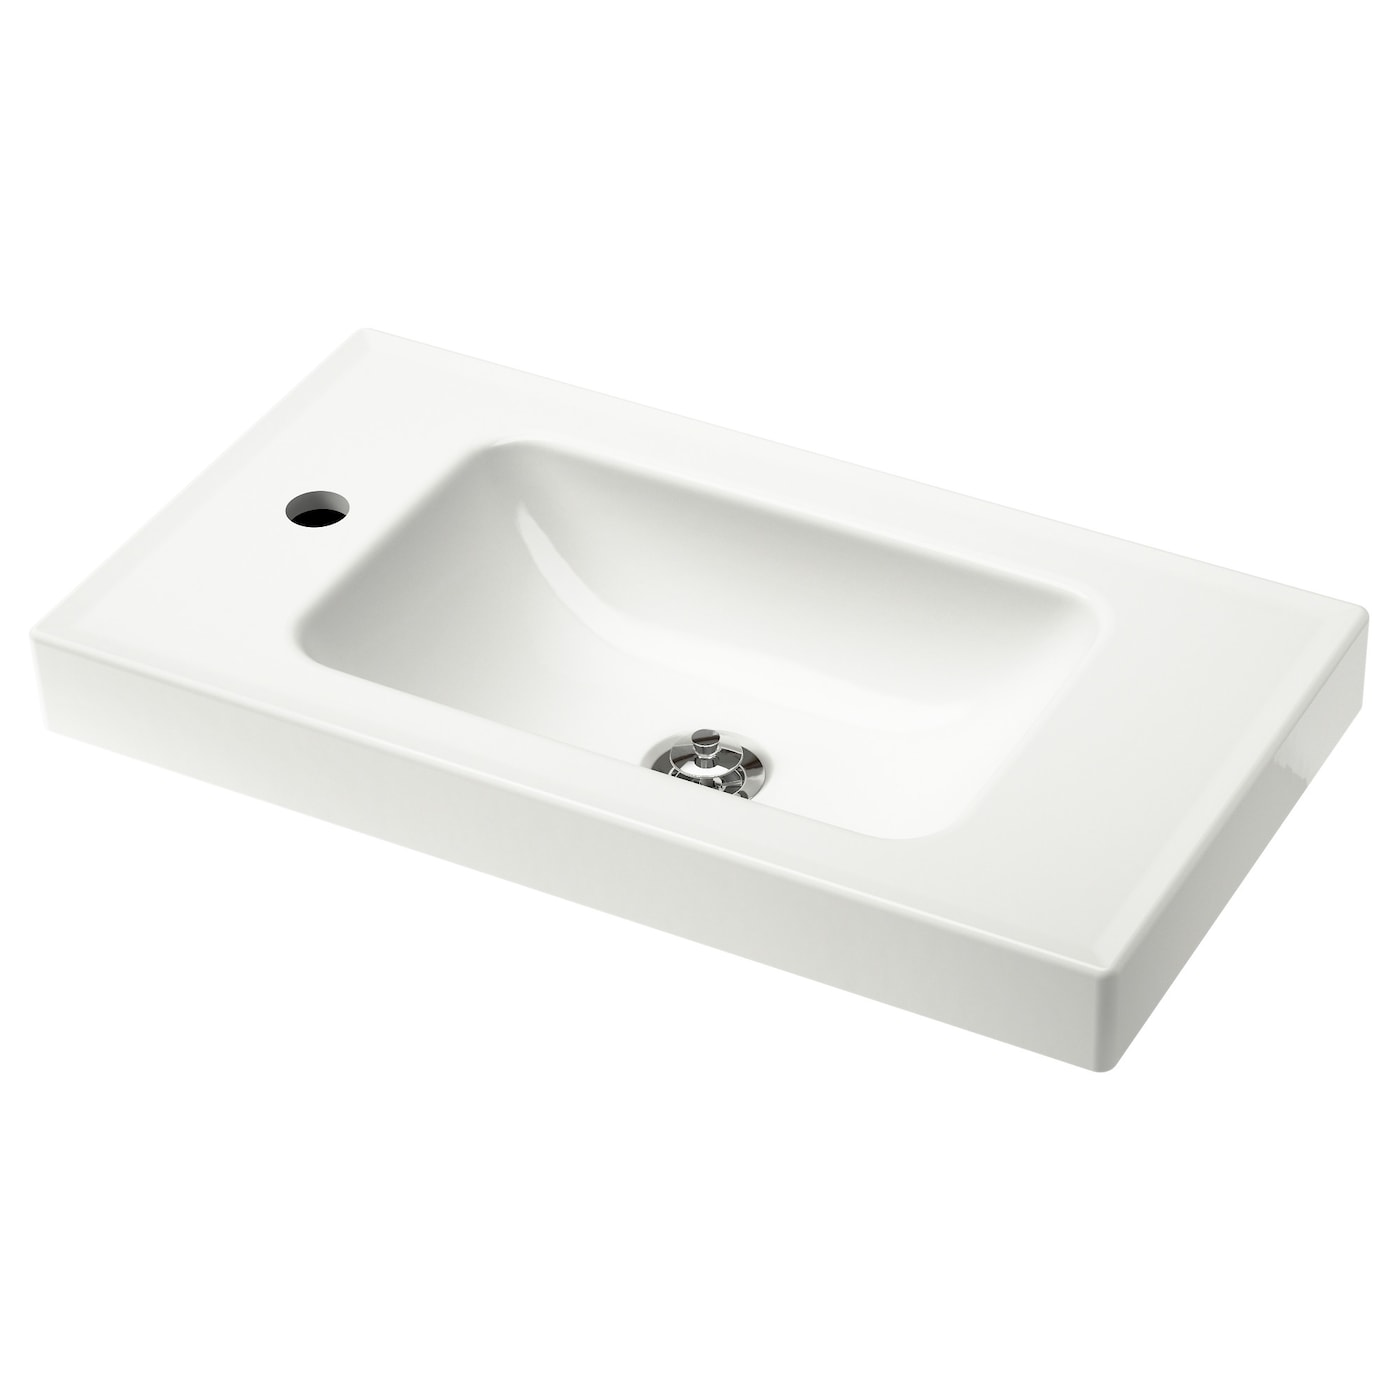 Hagaviken single wash basin white 60 cm ikea for Evier salle de bain ikea